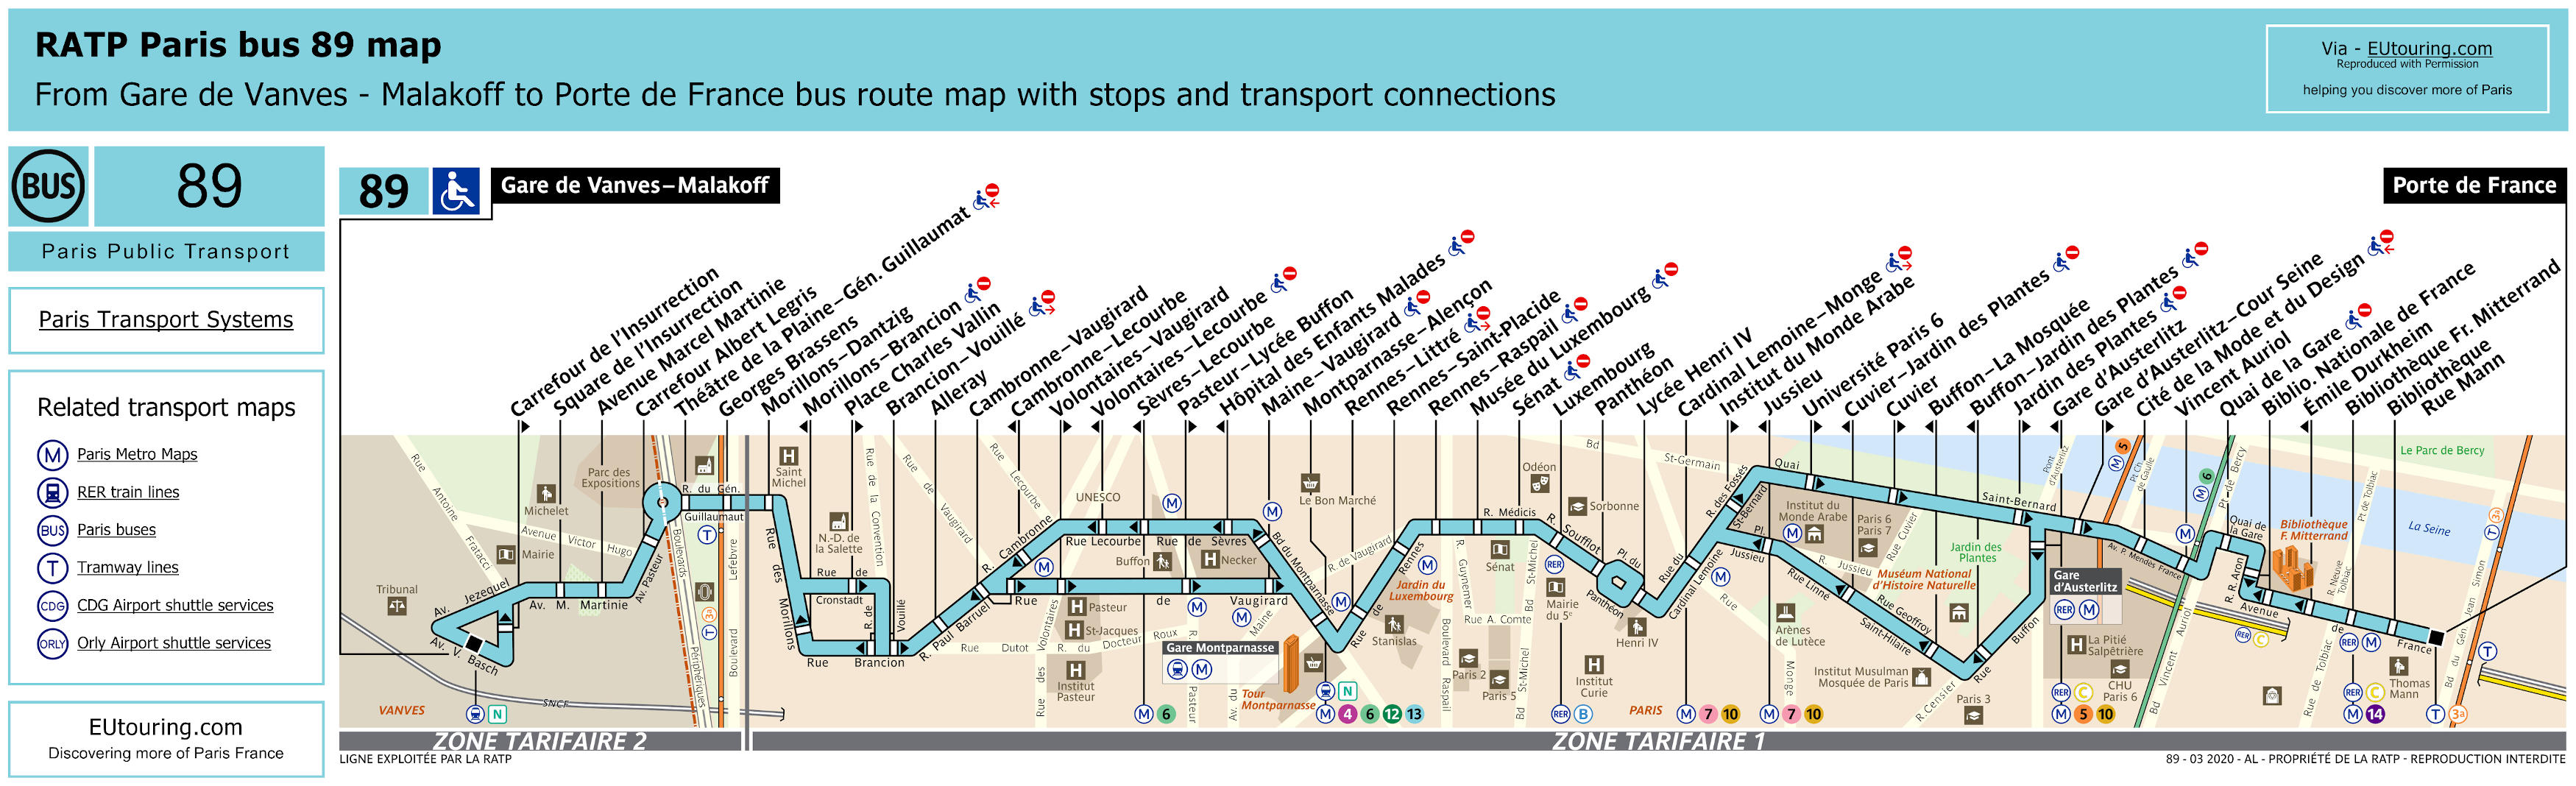 Ratp Route Maps Timetables For Paris Bus Lines 80 To 89 Update 2019